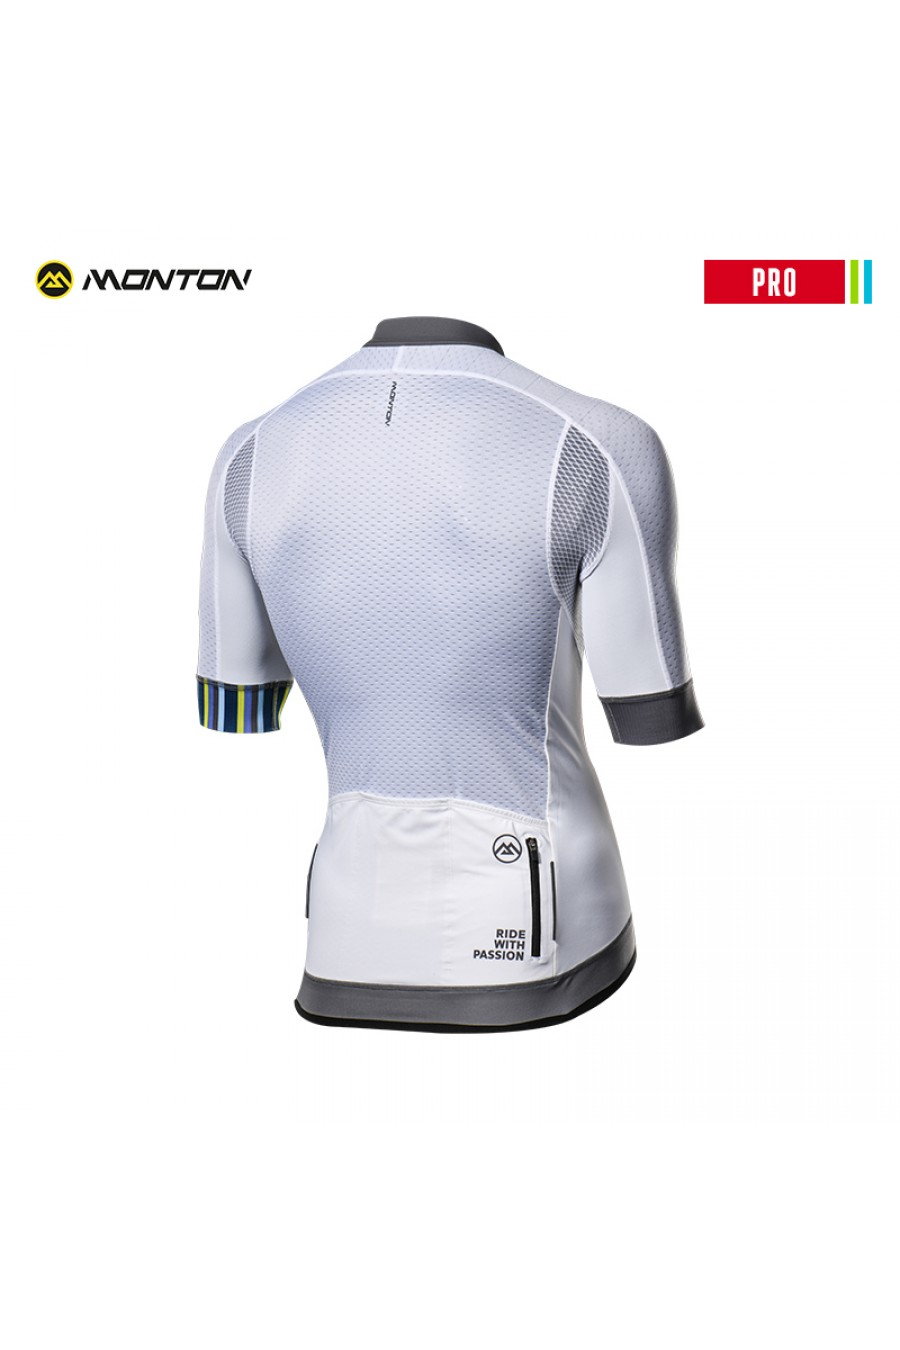 Cycling Jerseys from universities2017.ml Stay cool and comfortable on your bike with specially designed cycling jerseys made to promote ventilation and moisture wicking, and prevent chafing.